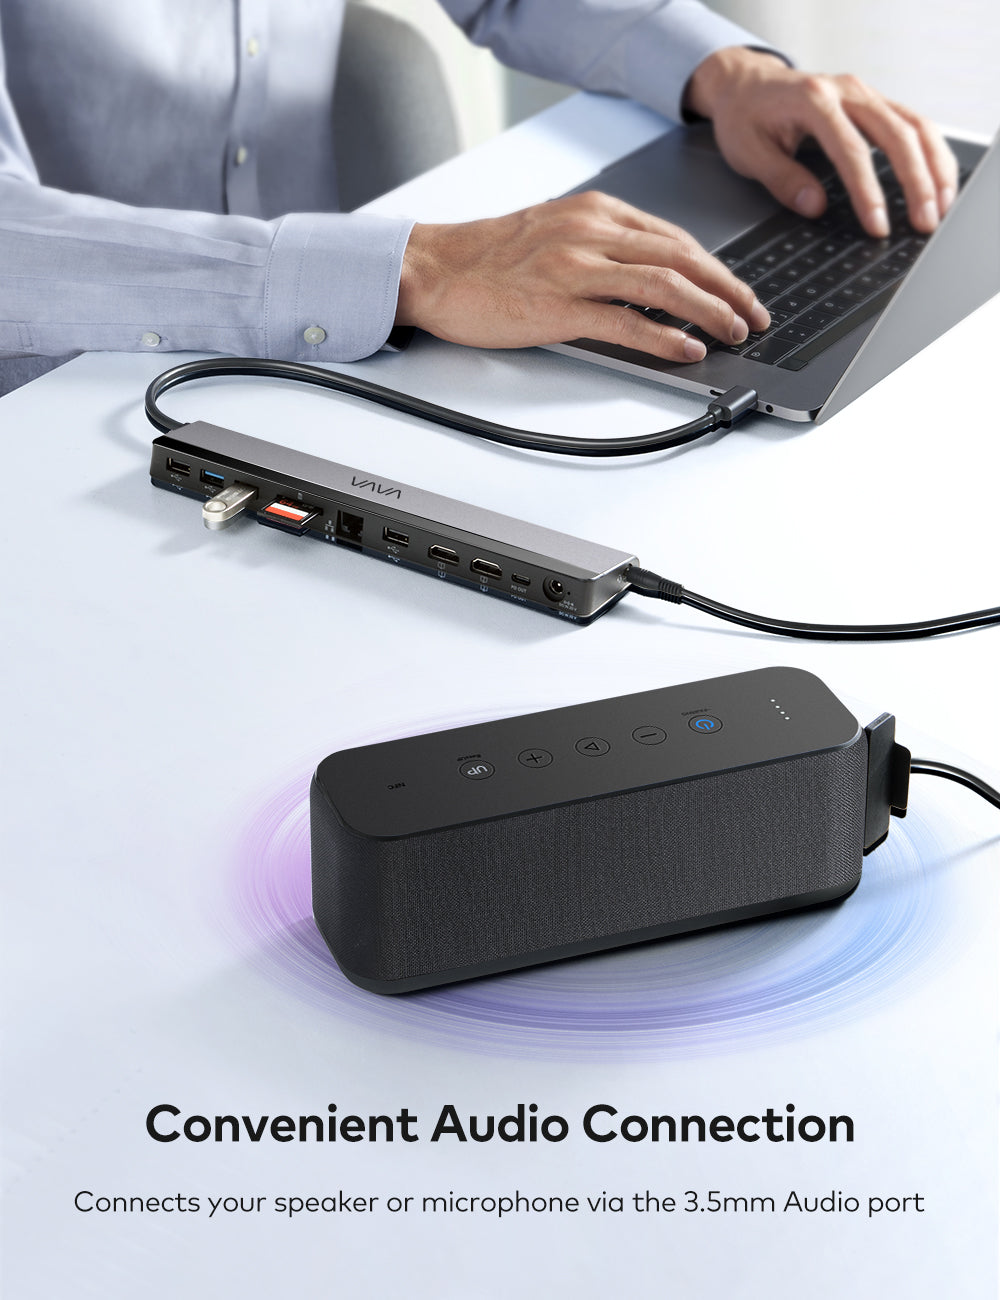 Convenient Audio Connection